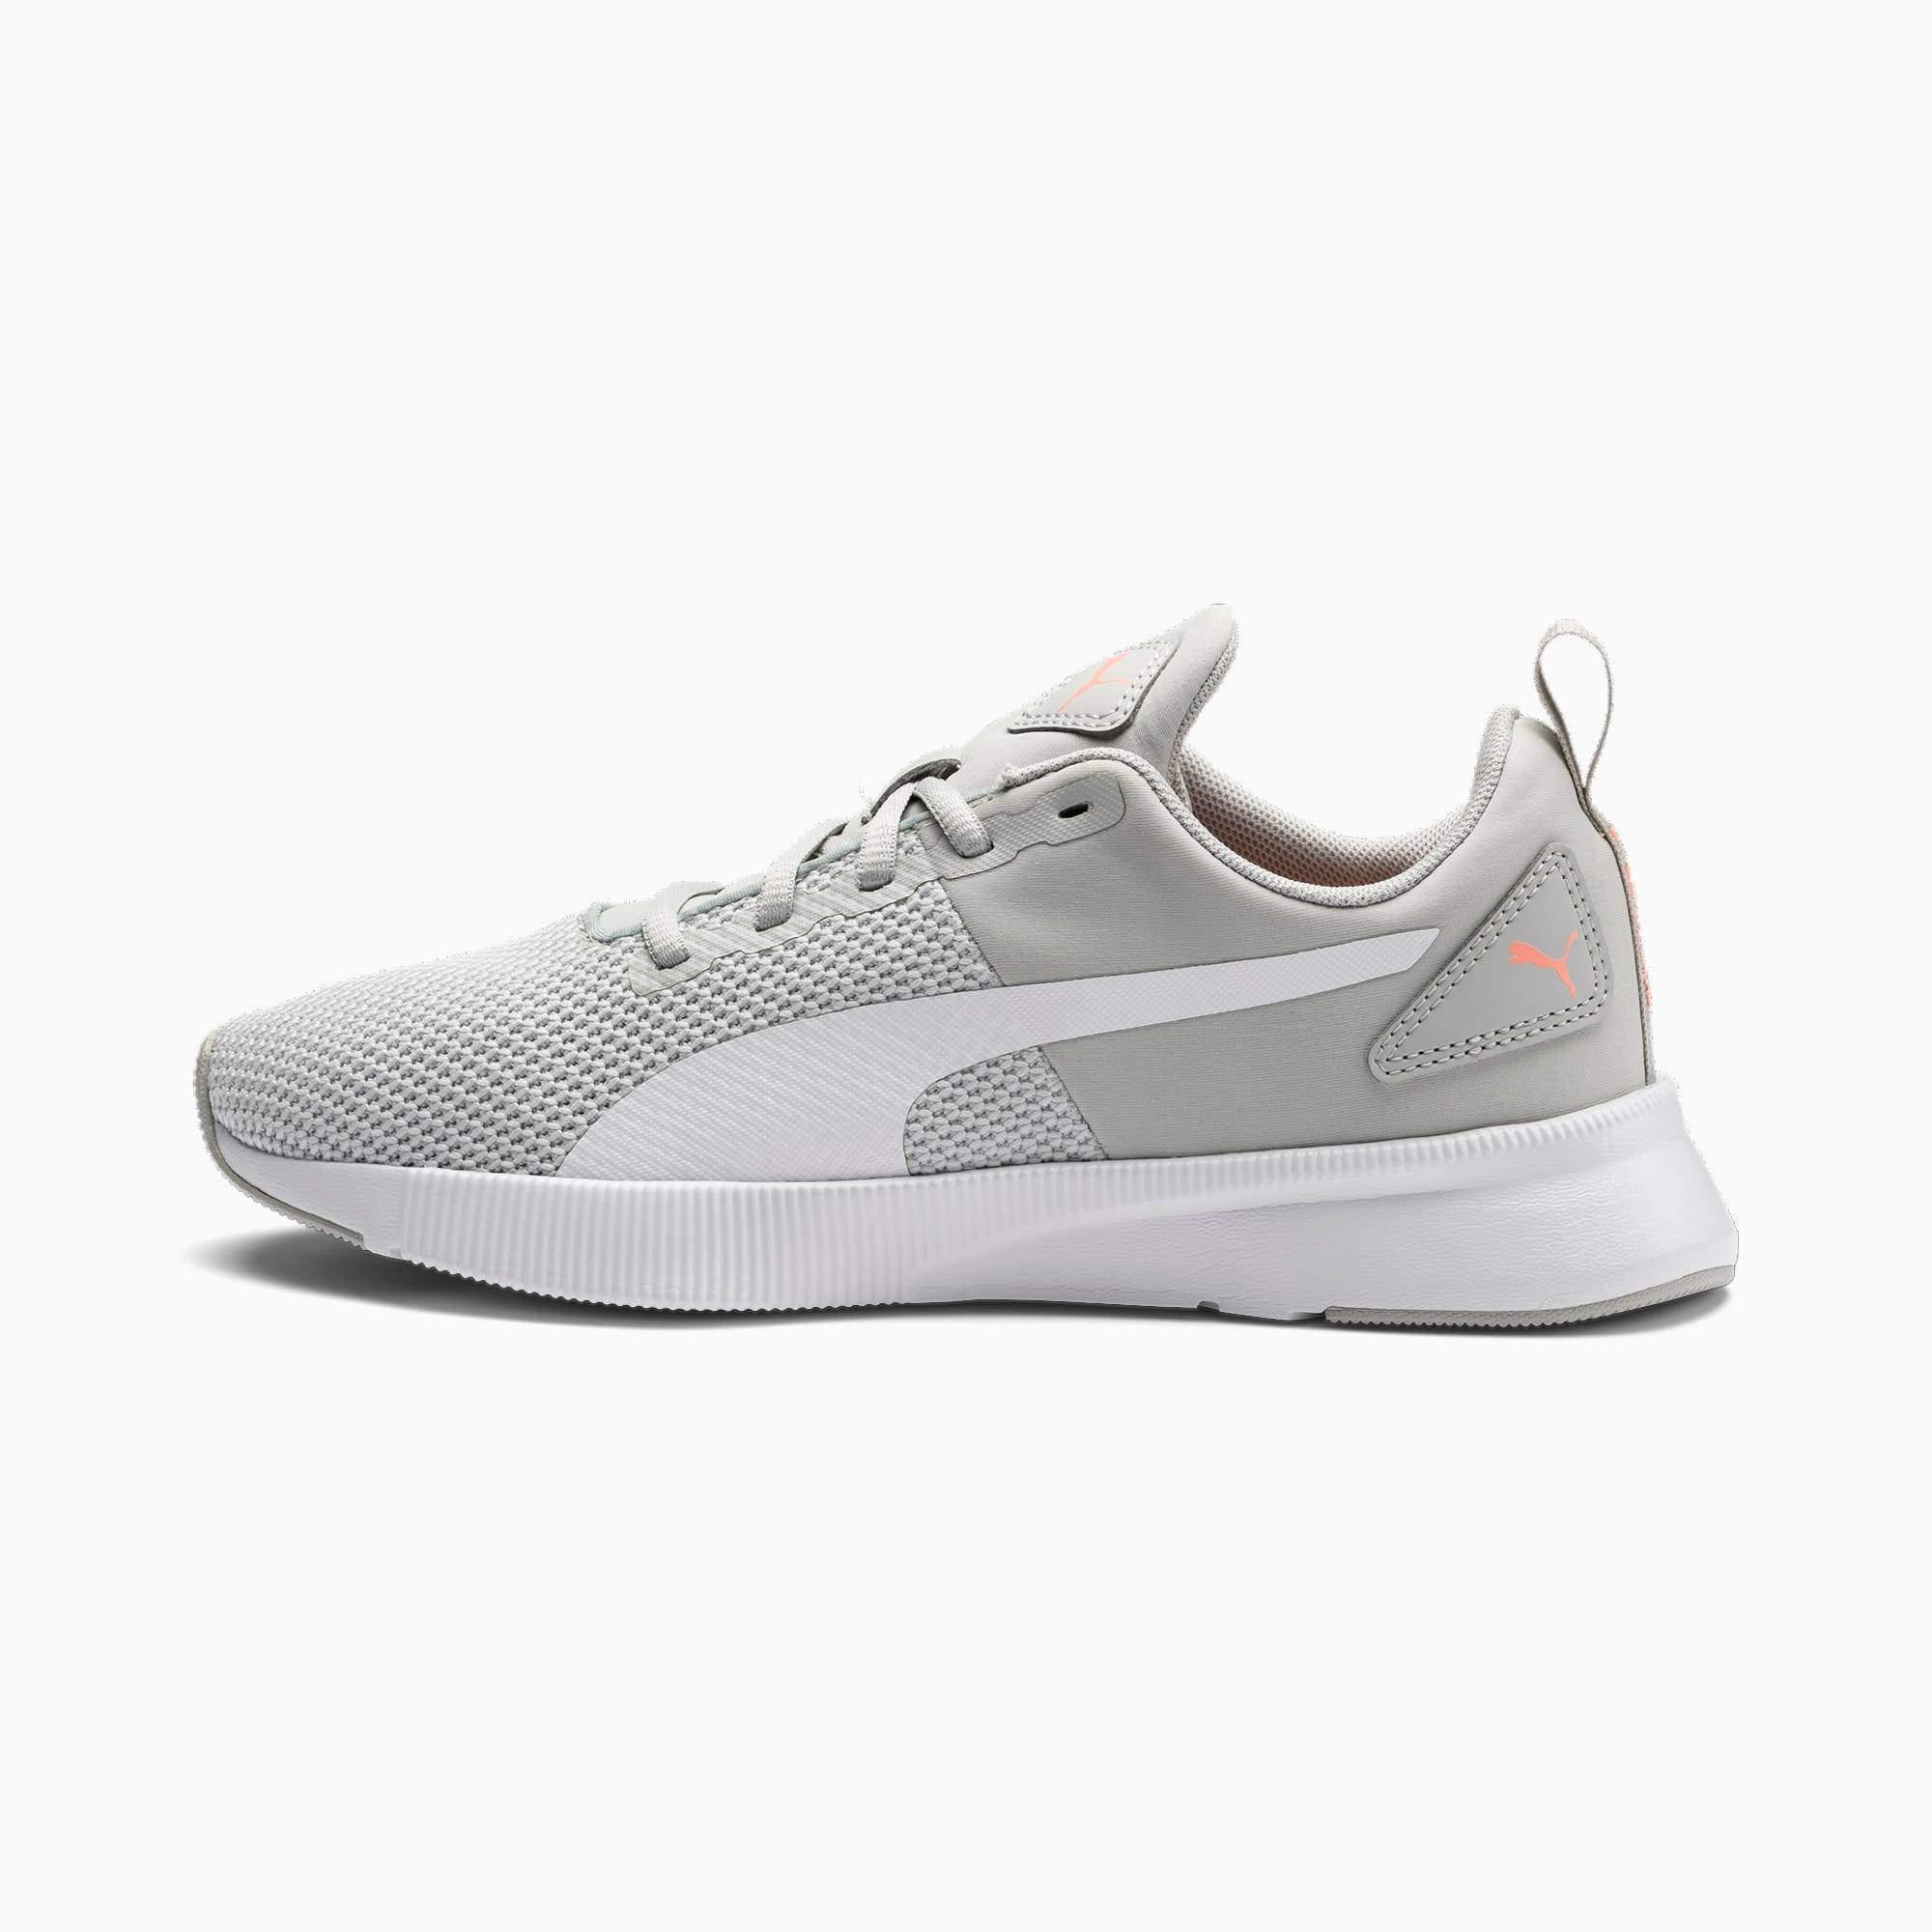 PUMA Chaussure de course Flyer Runner, Blanc/Rose/Gris, Taille 38.5, Chaussures